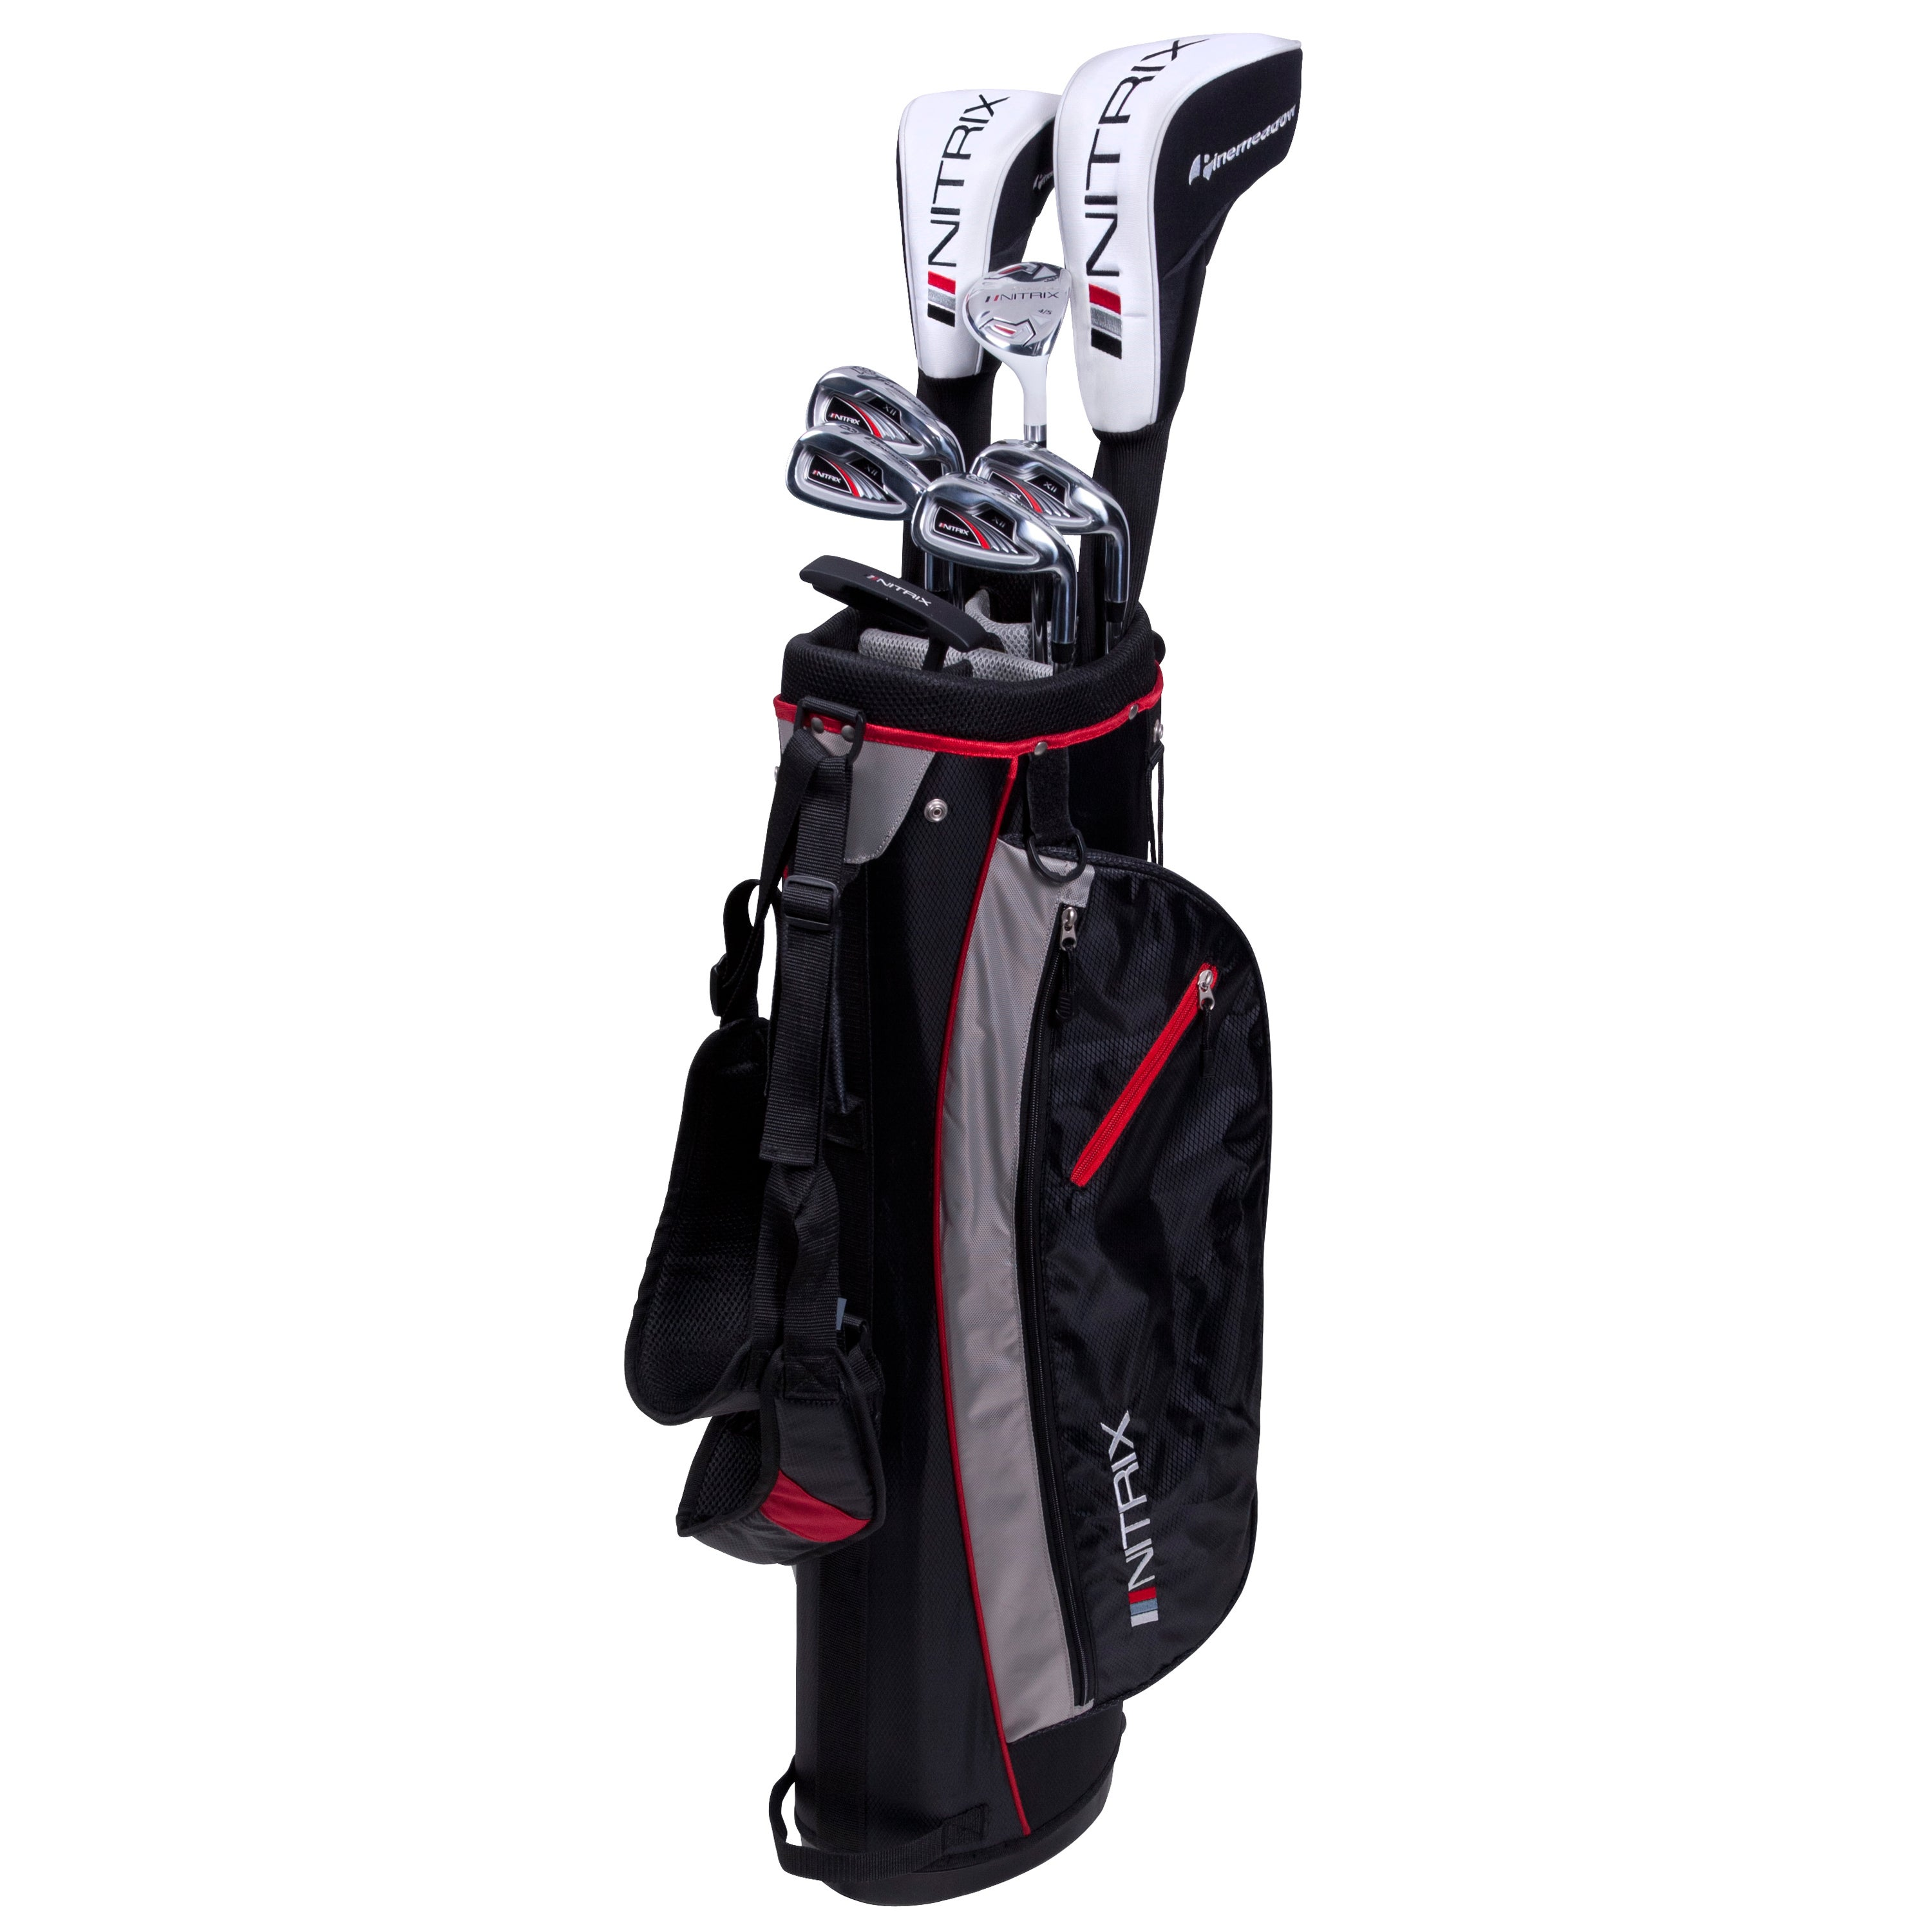 a89aba5b7c43 Golf Club Sets | Find Great Golf Equipment Deals Shopping at Overstock